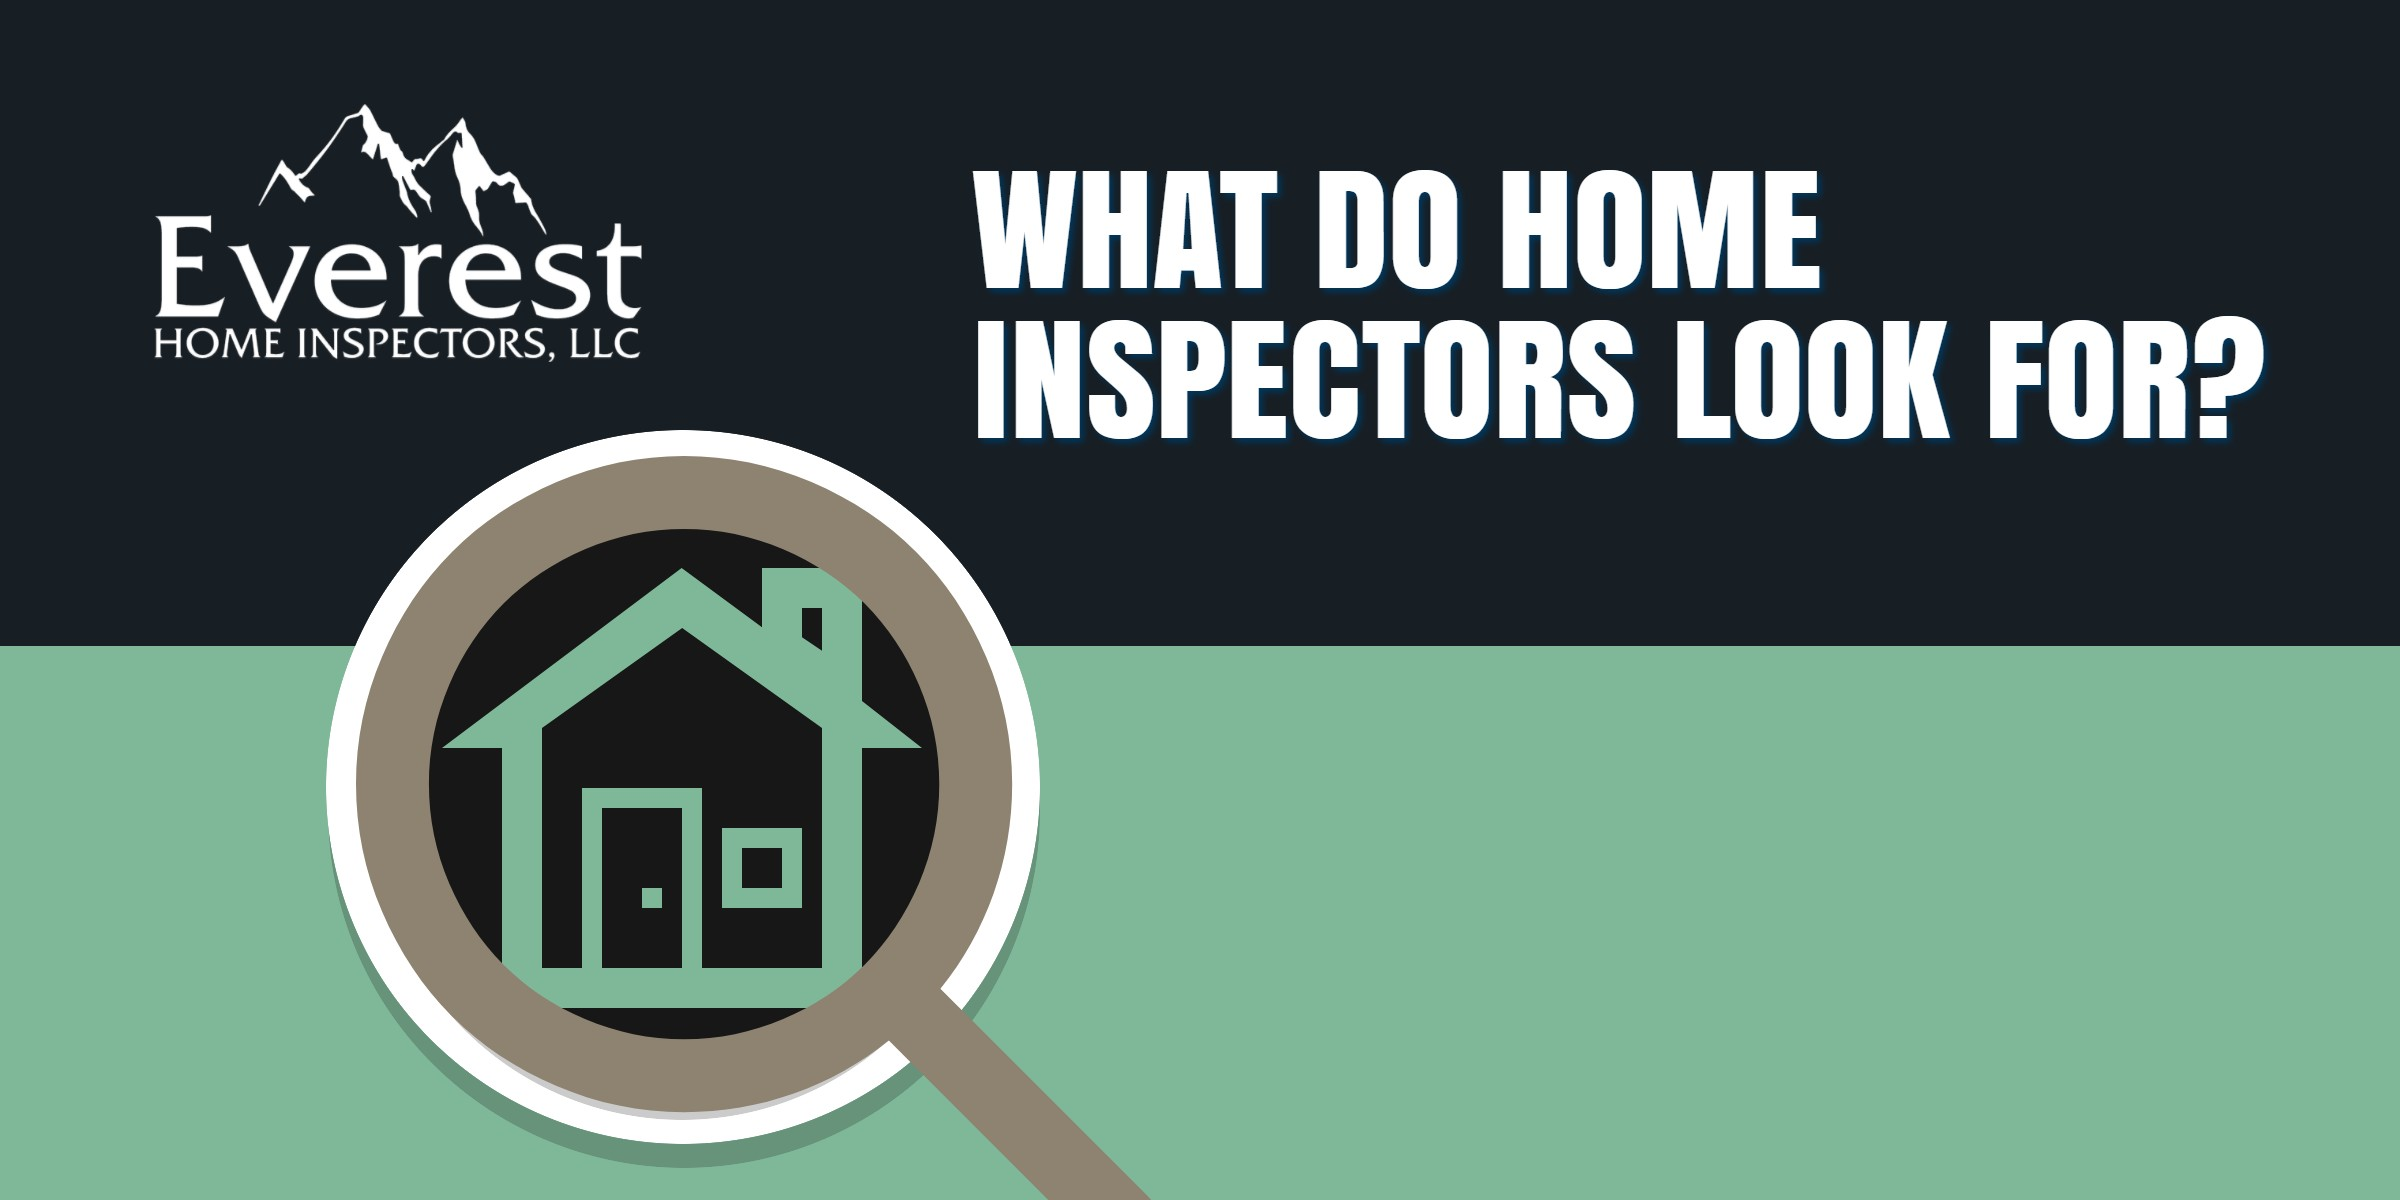 What Do Home Inspectors Look For During An Inspection?